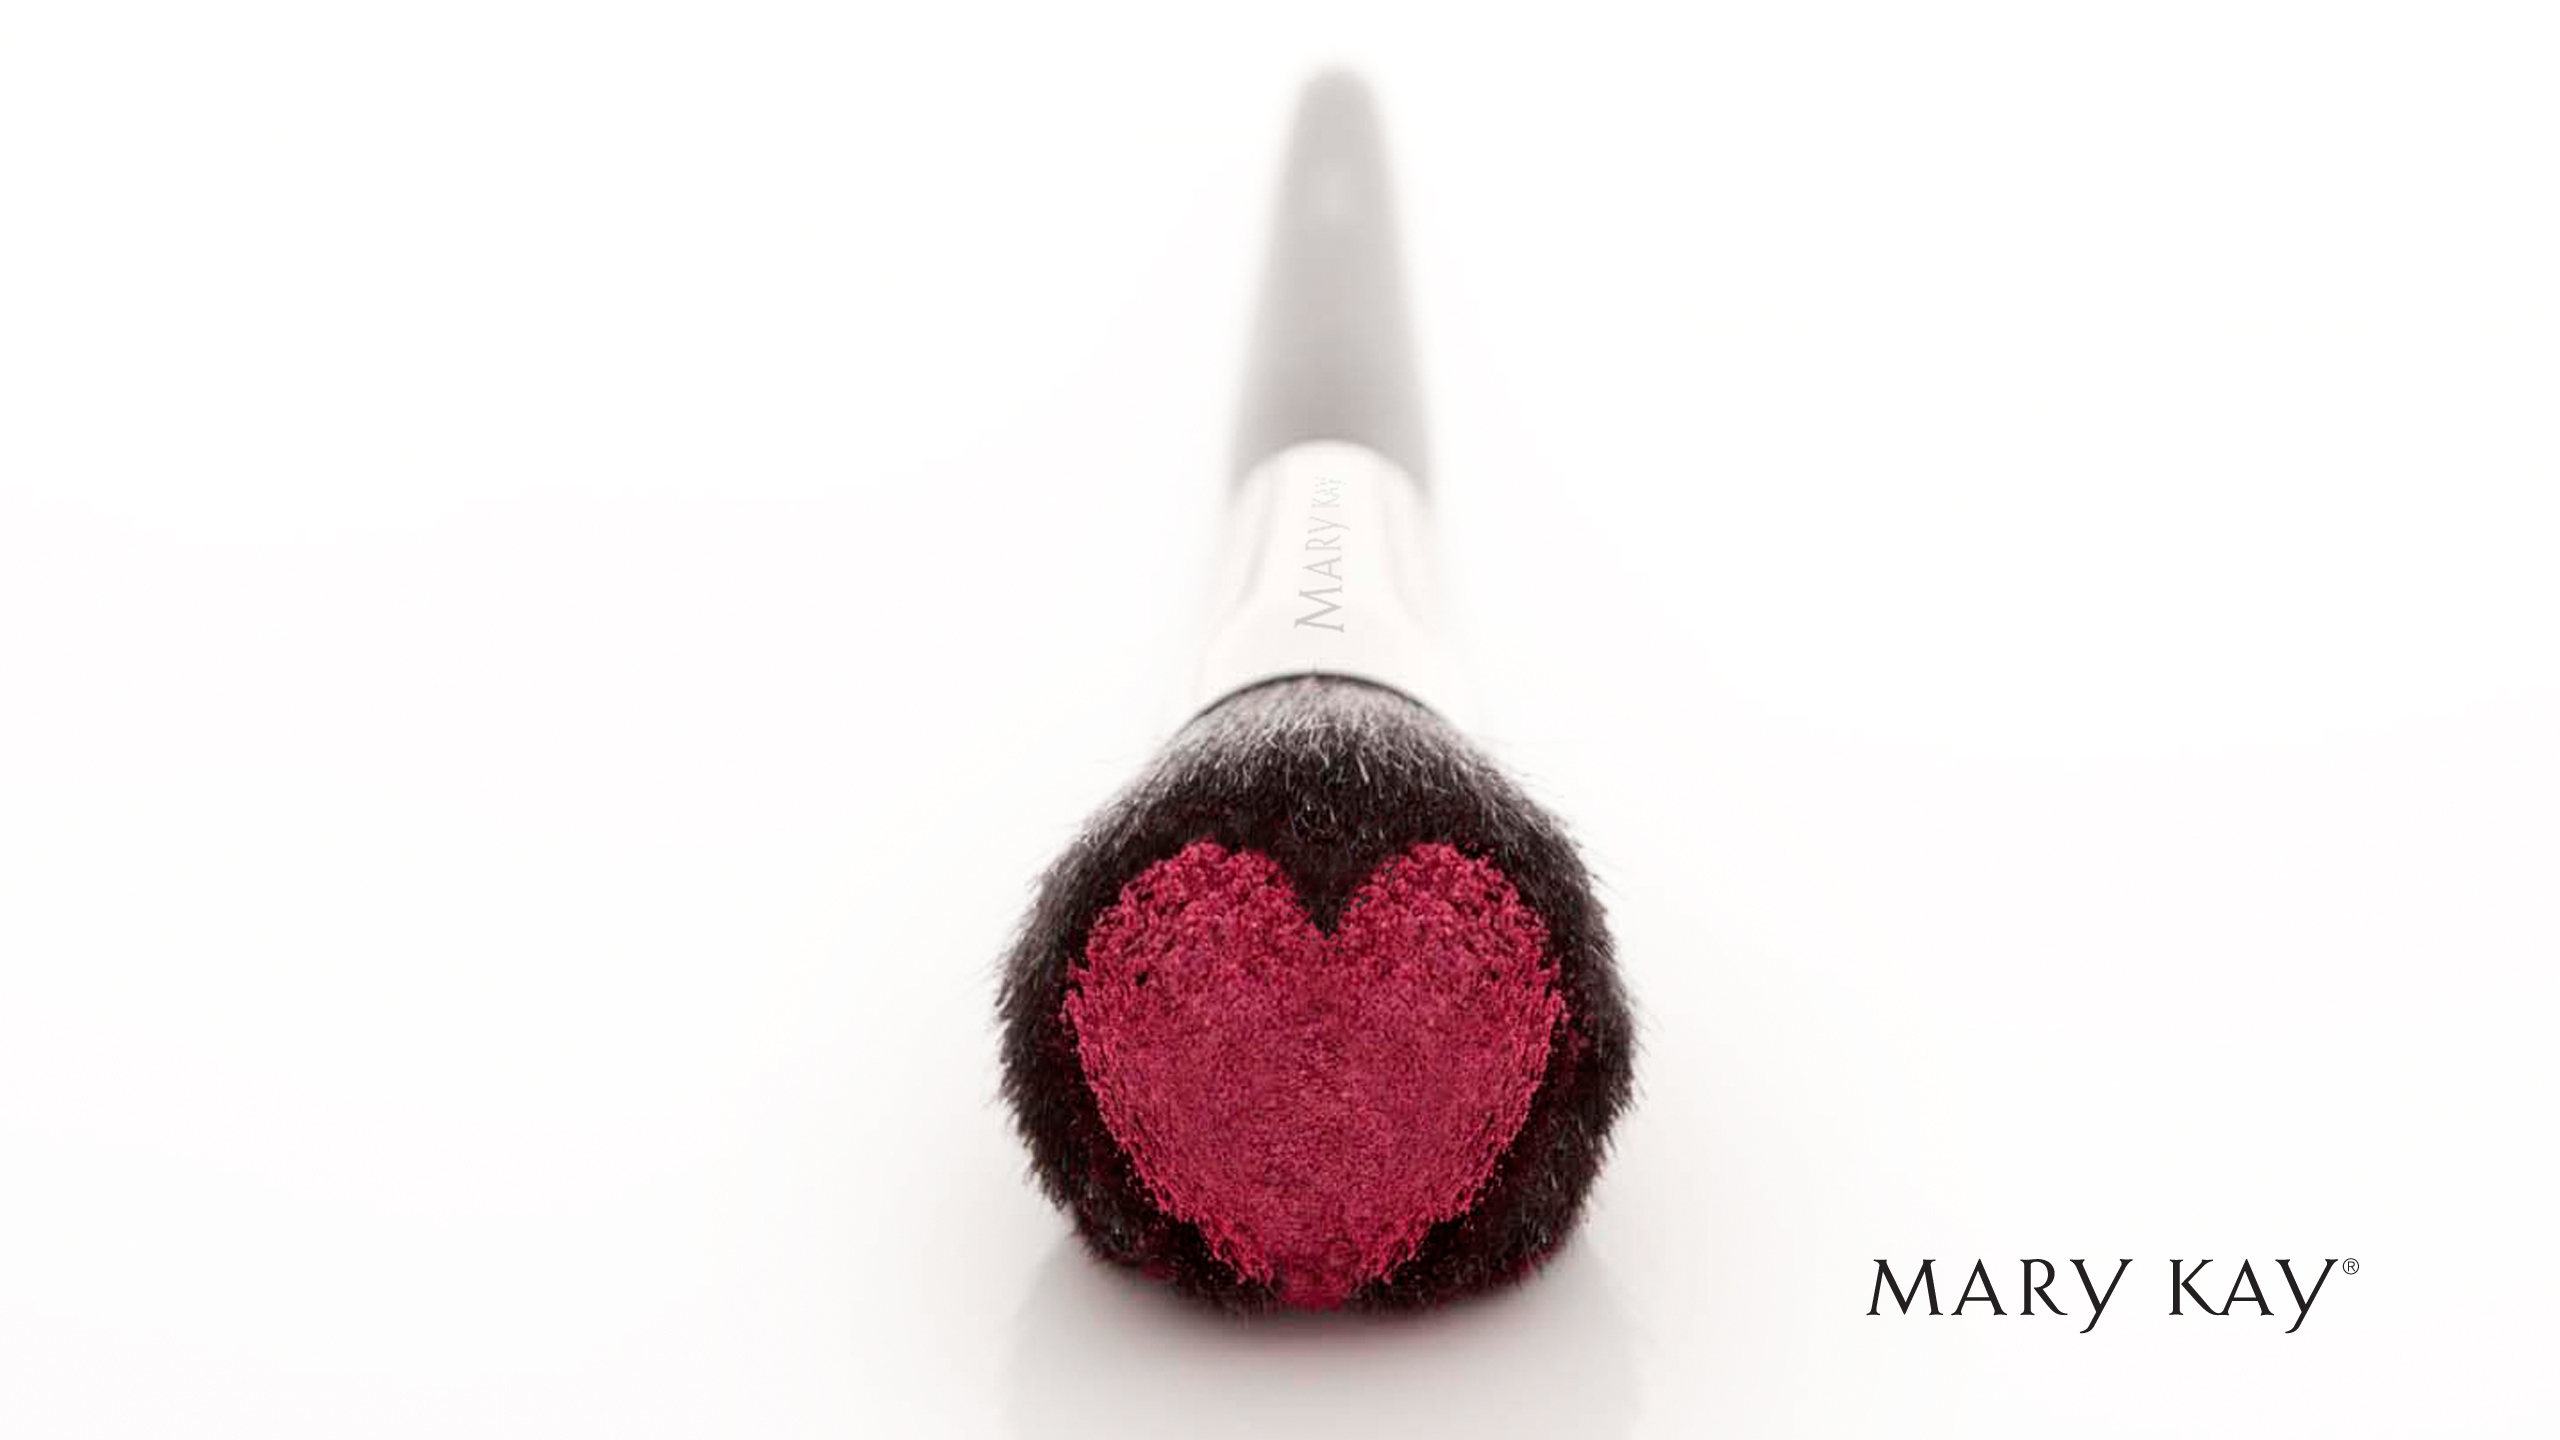 Download Mary Kay Wallpaper Gallery